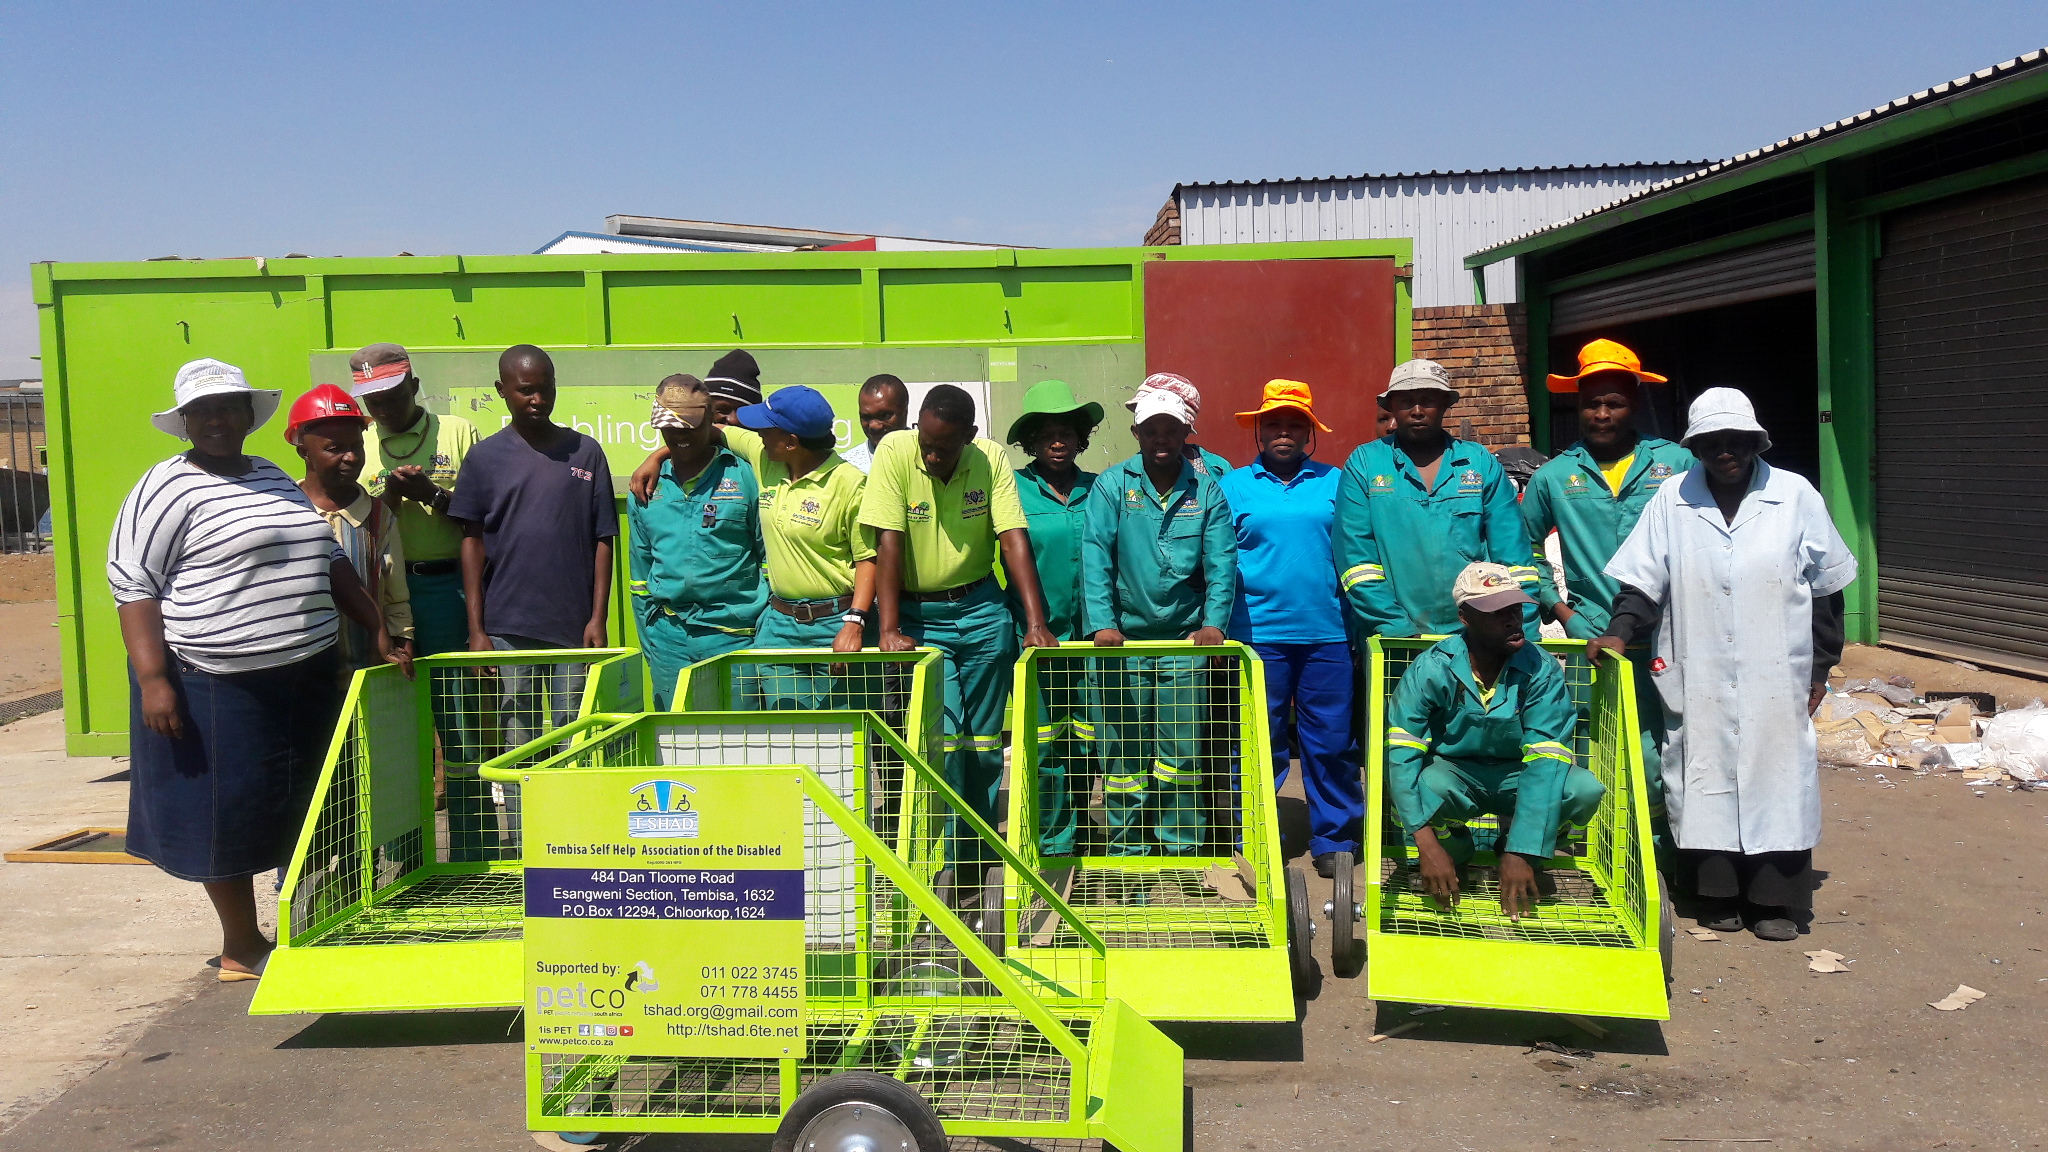 PETCO teams up with T-SHAD to provide training, PPE and Baling Machine